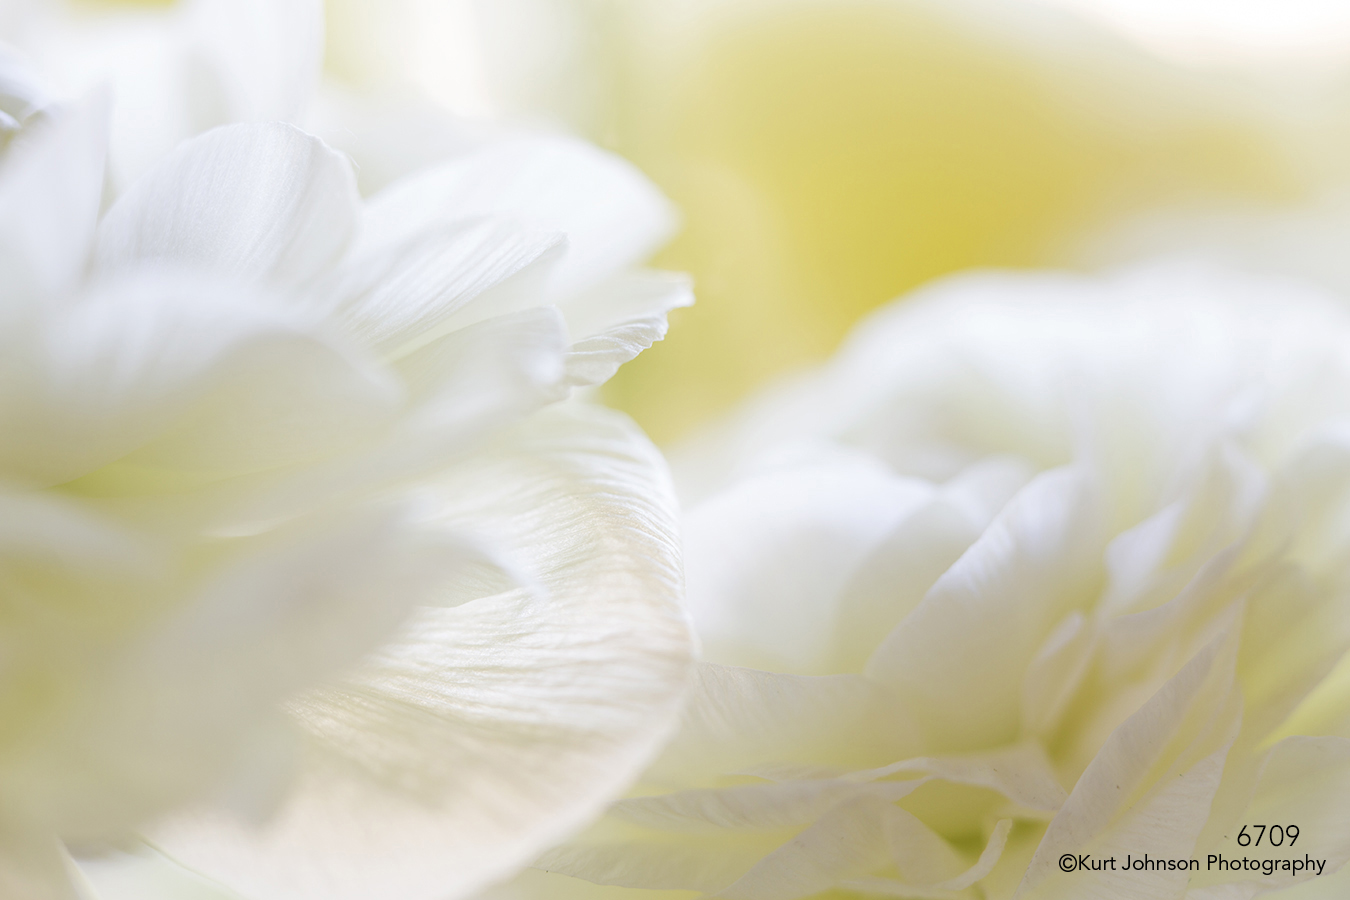 flower petals white abstract texture details close up